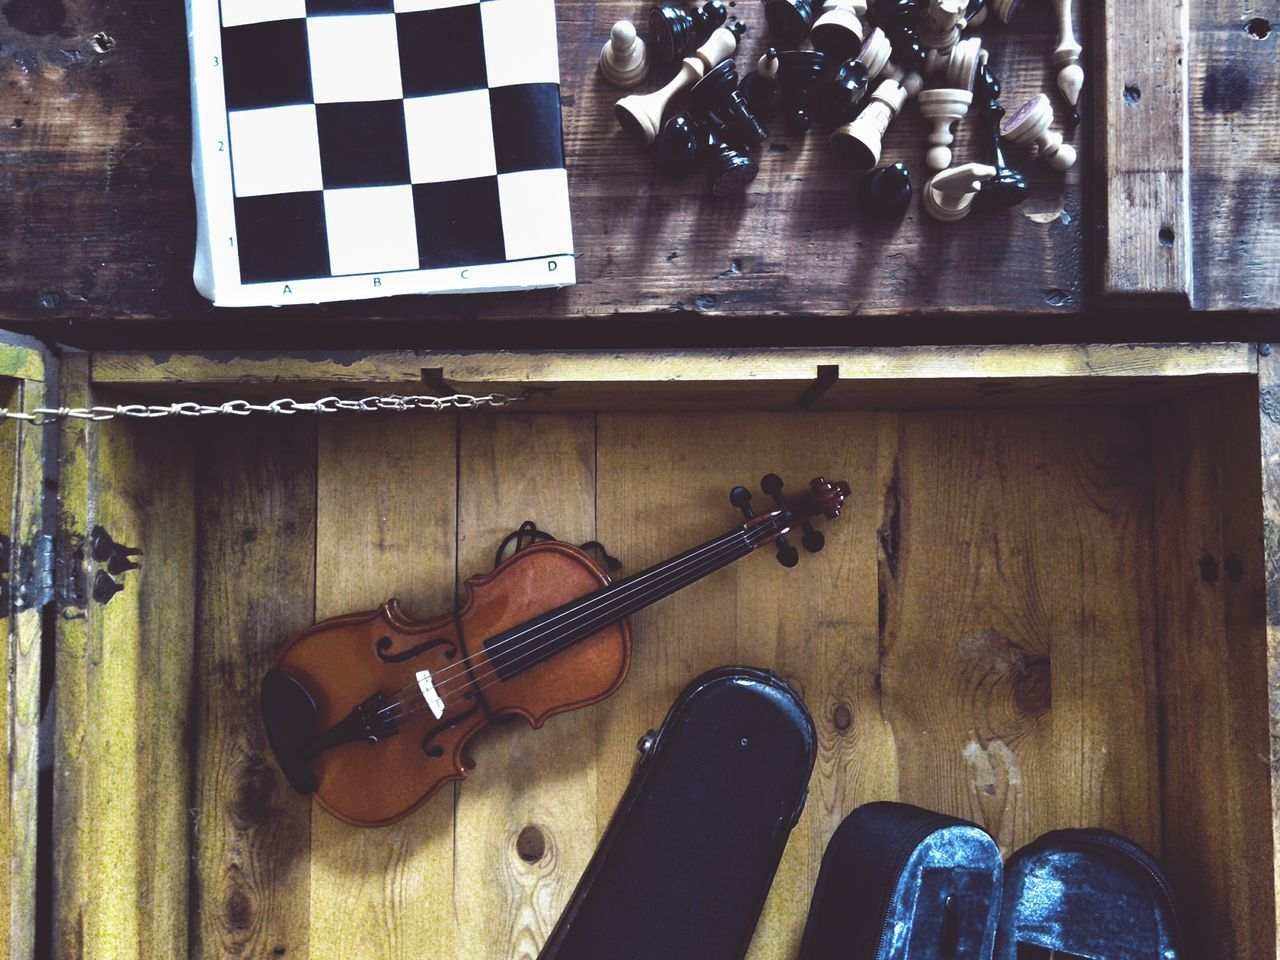 Old Chest Chess Chess Board Chess Set Violin Violin Case Wood - Material High Angle View Indoors  Directly Above Wooden Chest